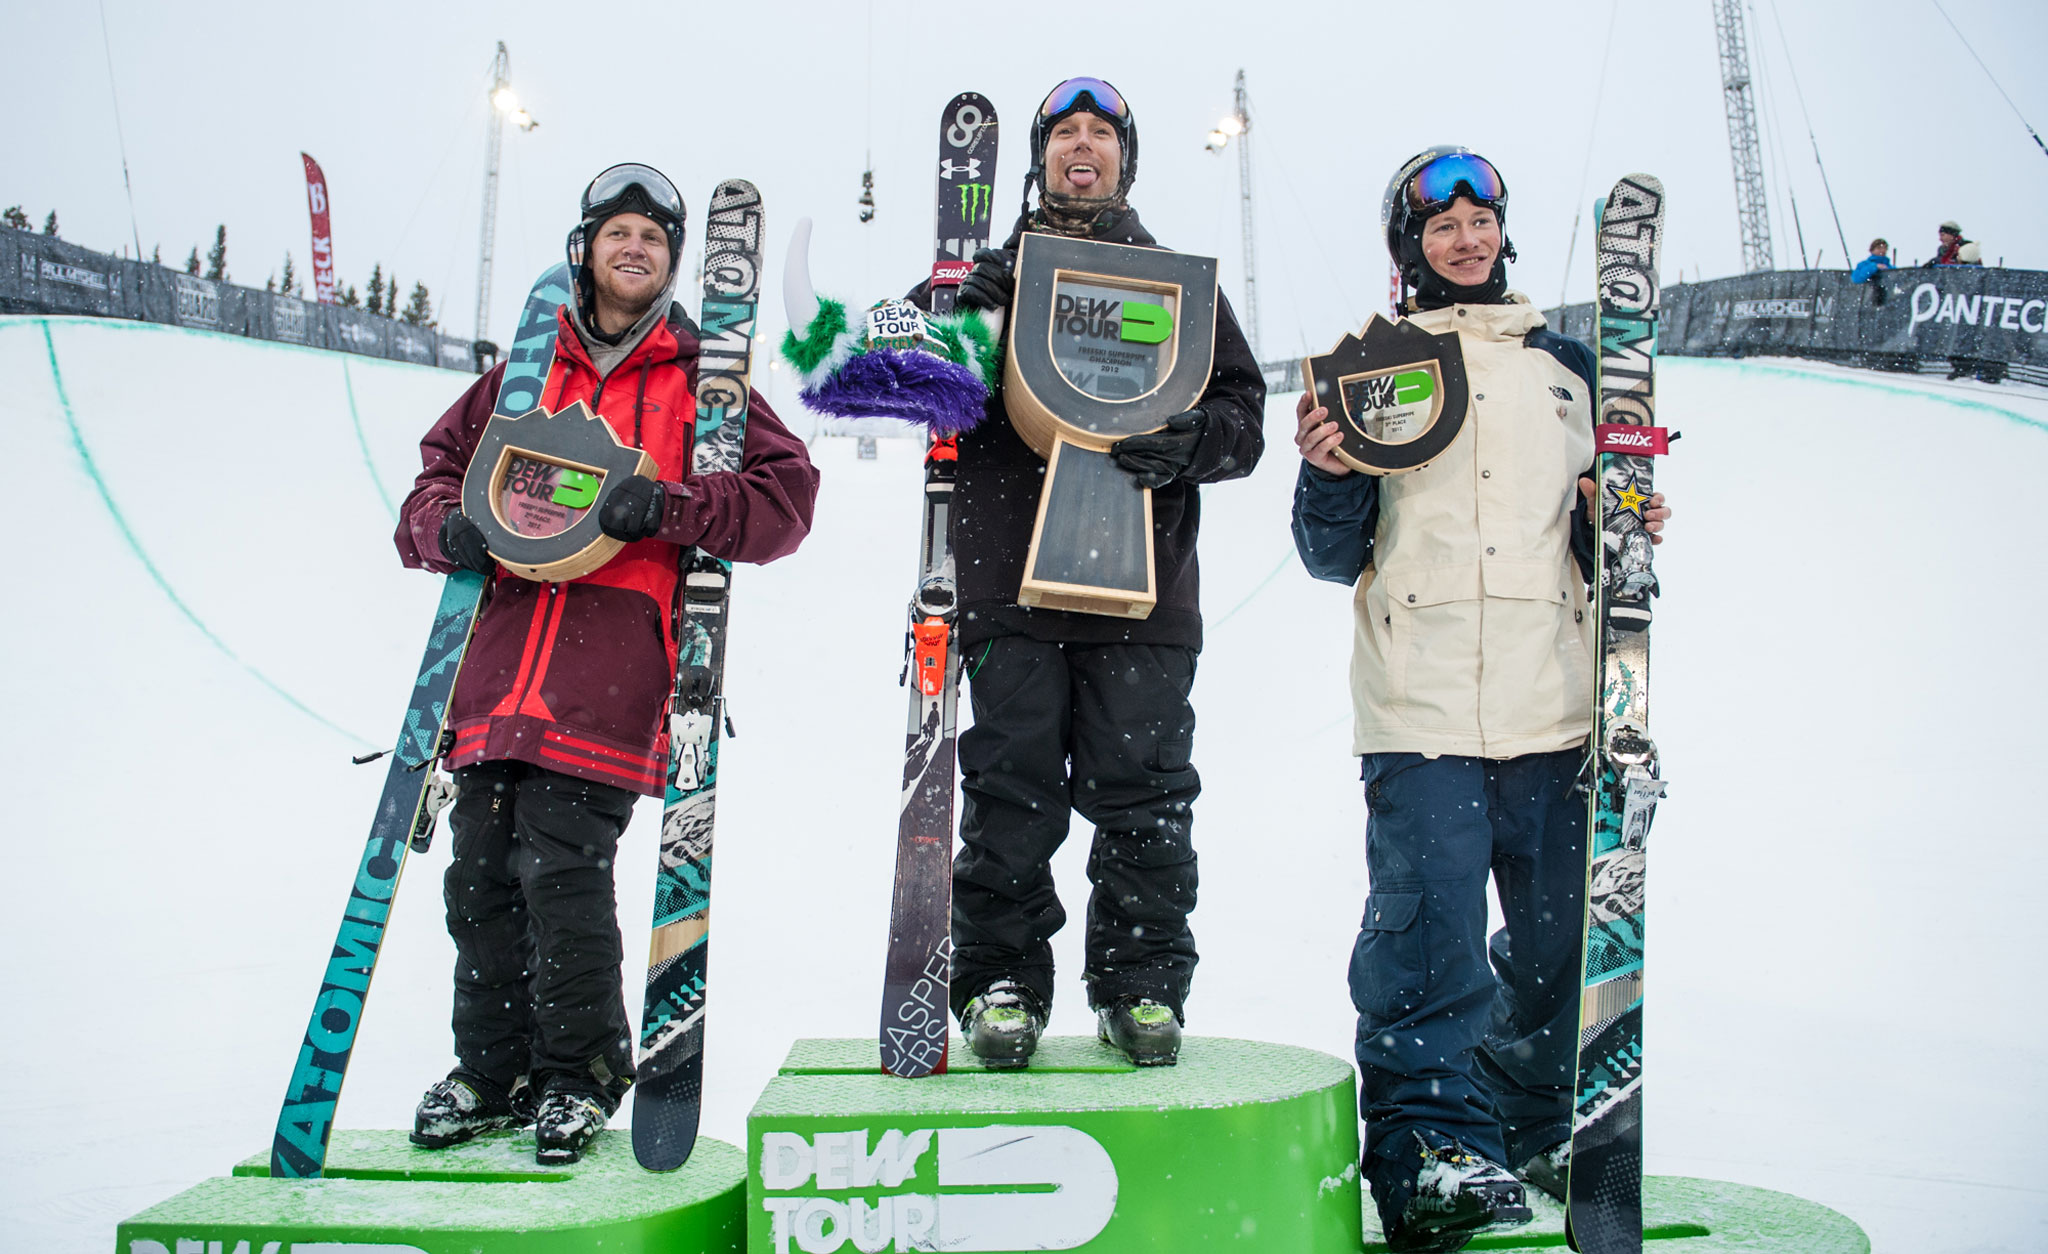 Men's Pipe Podium